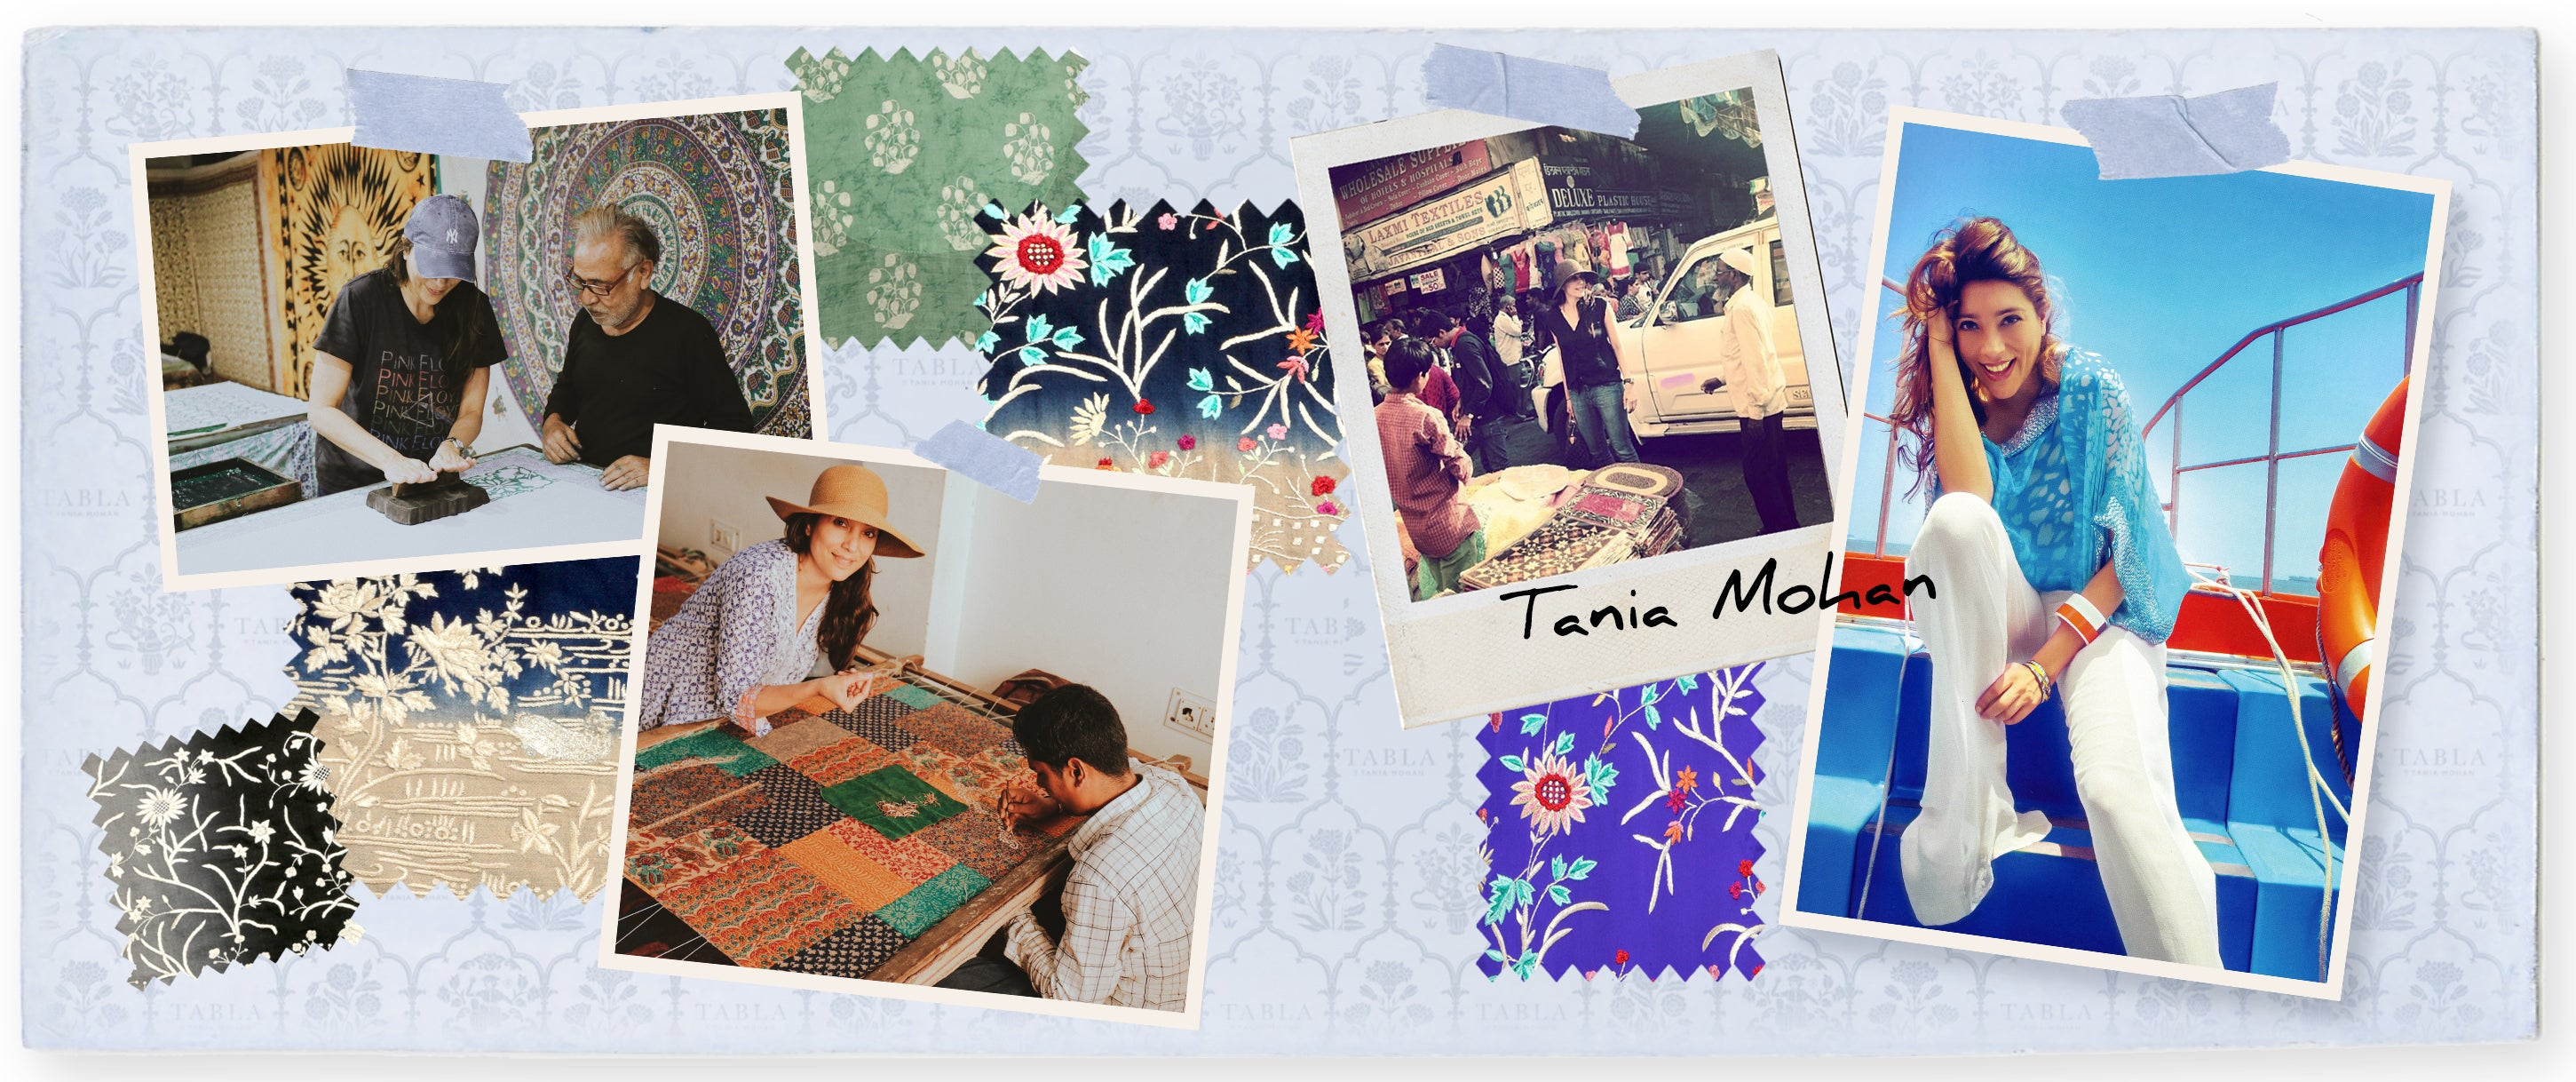 about Tania Mohan, founder of TABLA